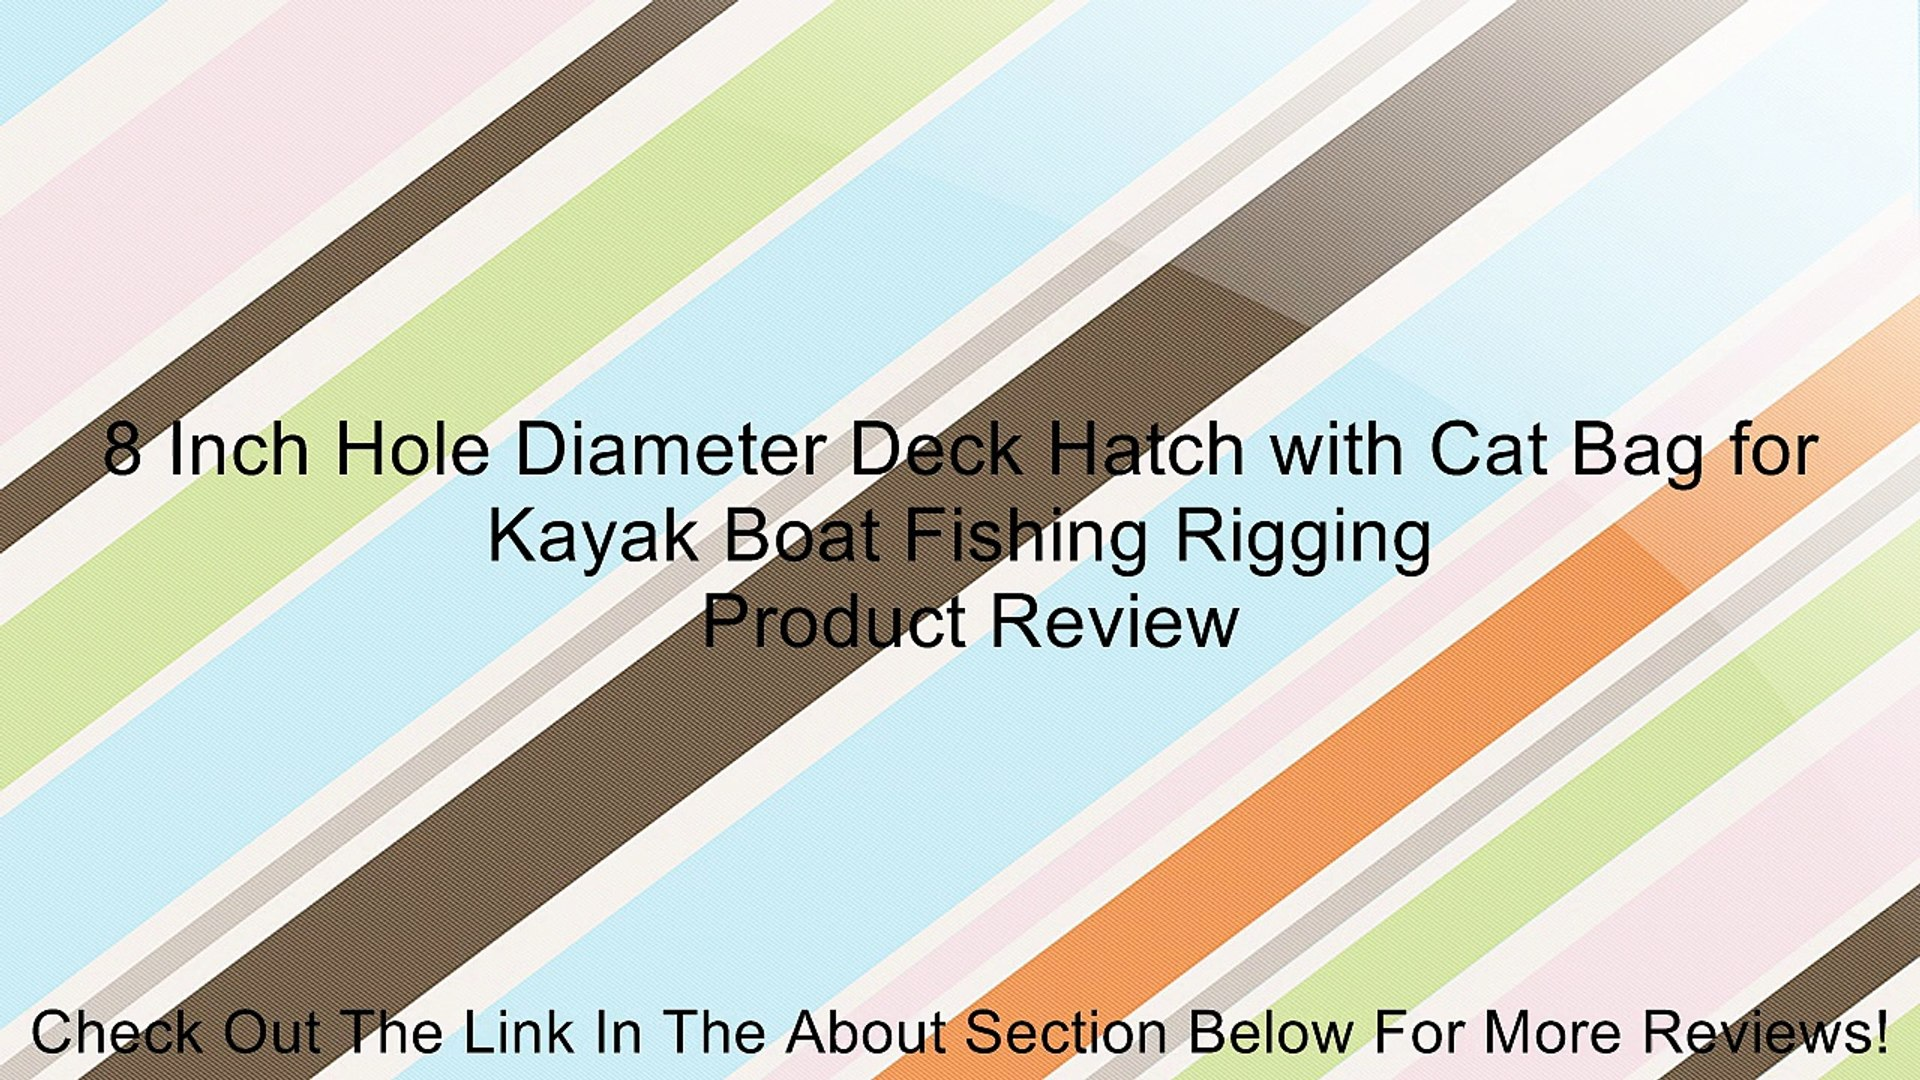 8 Inch Hole Diameter Deck Hatch with Cat Bag for Kayak Boat Fishing rigging New